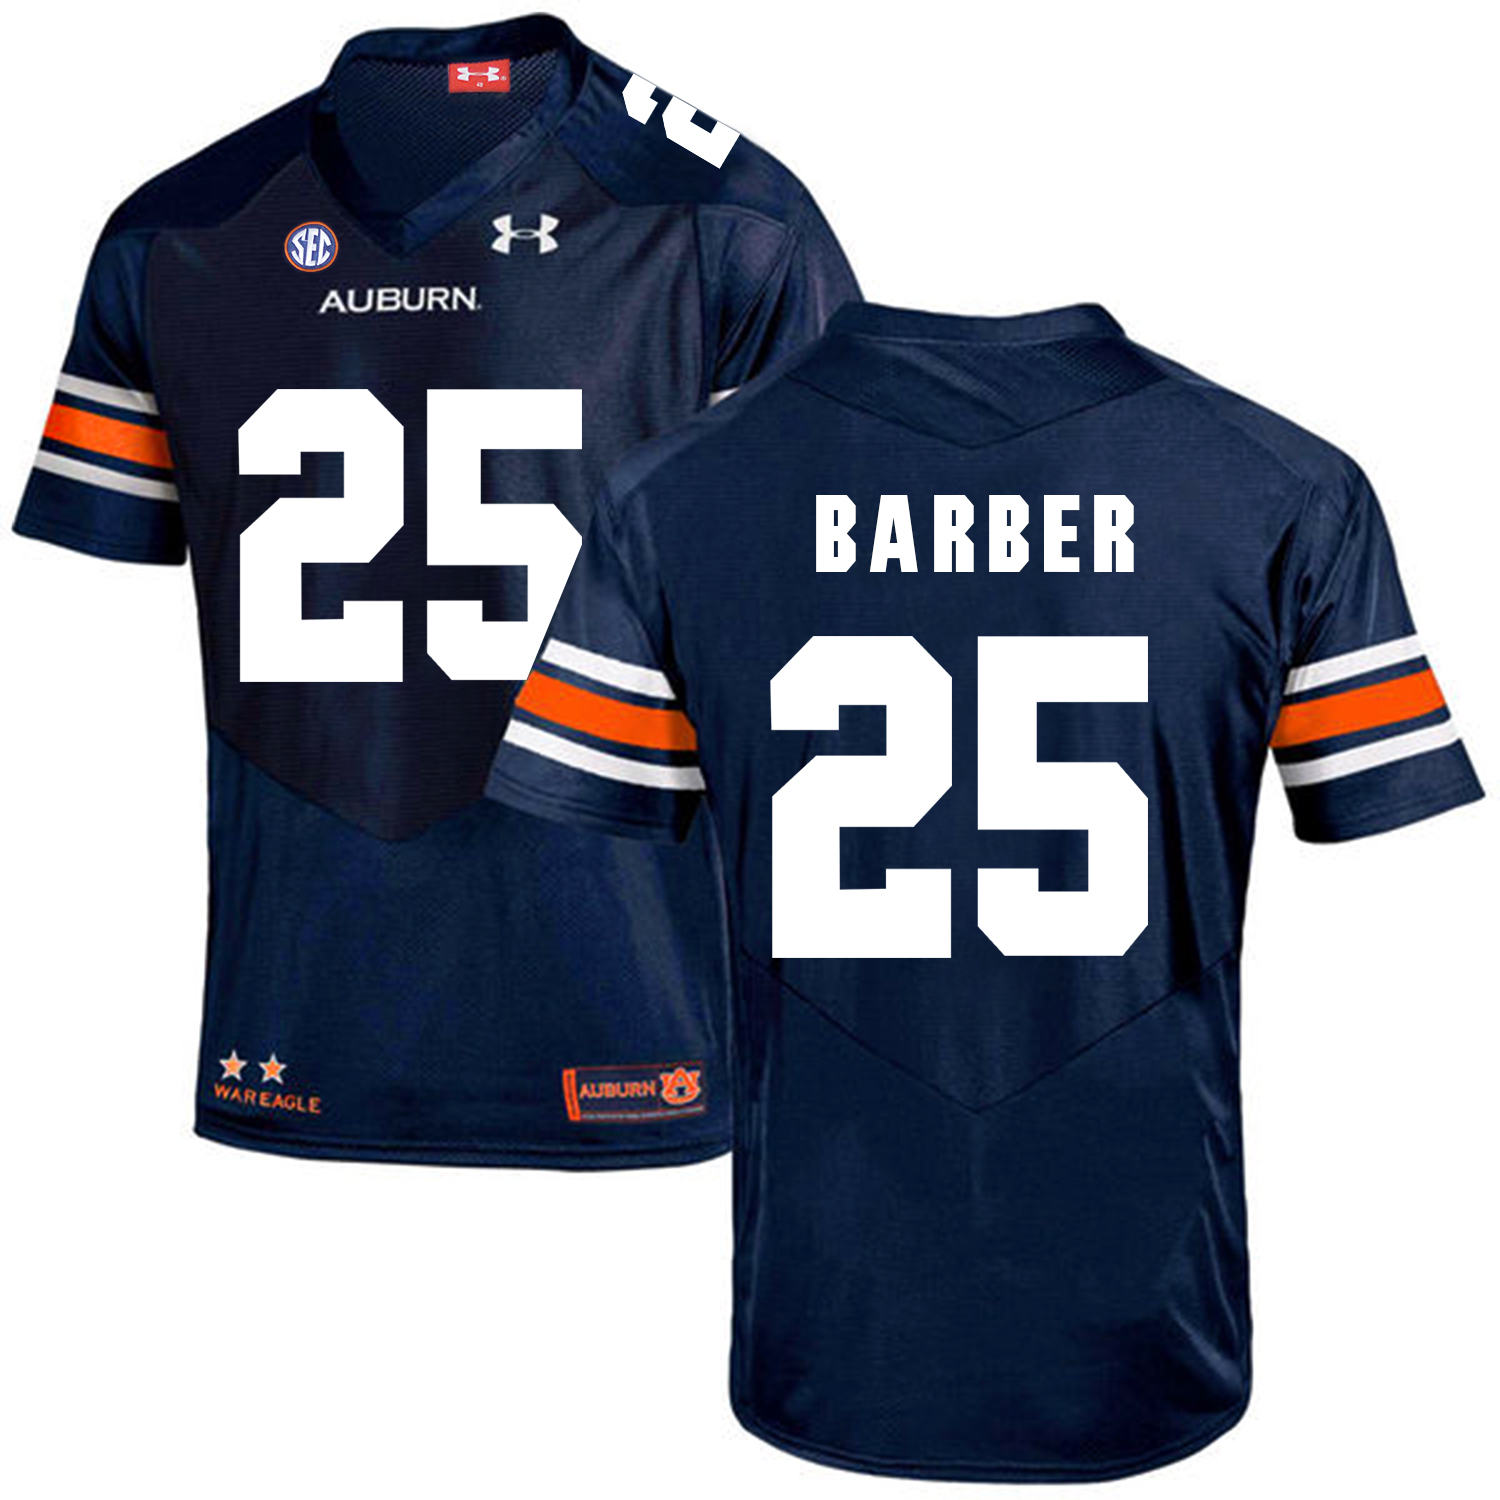 Auburn Tigers 25 Peyton Barber Navy College Football Jersey